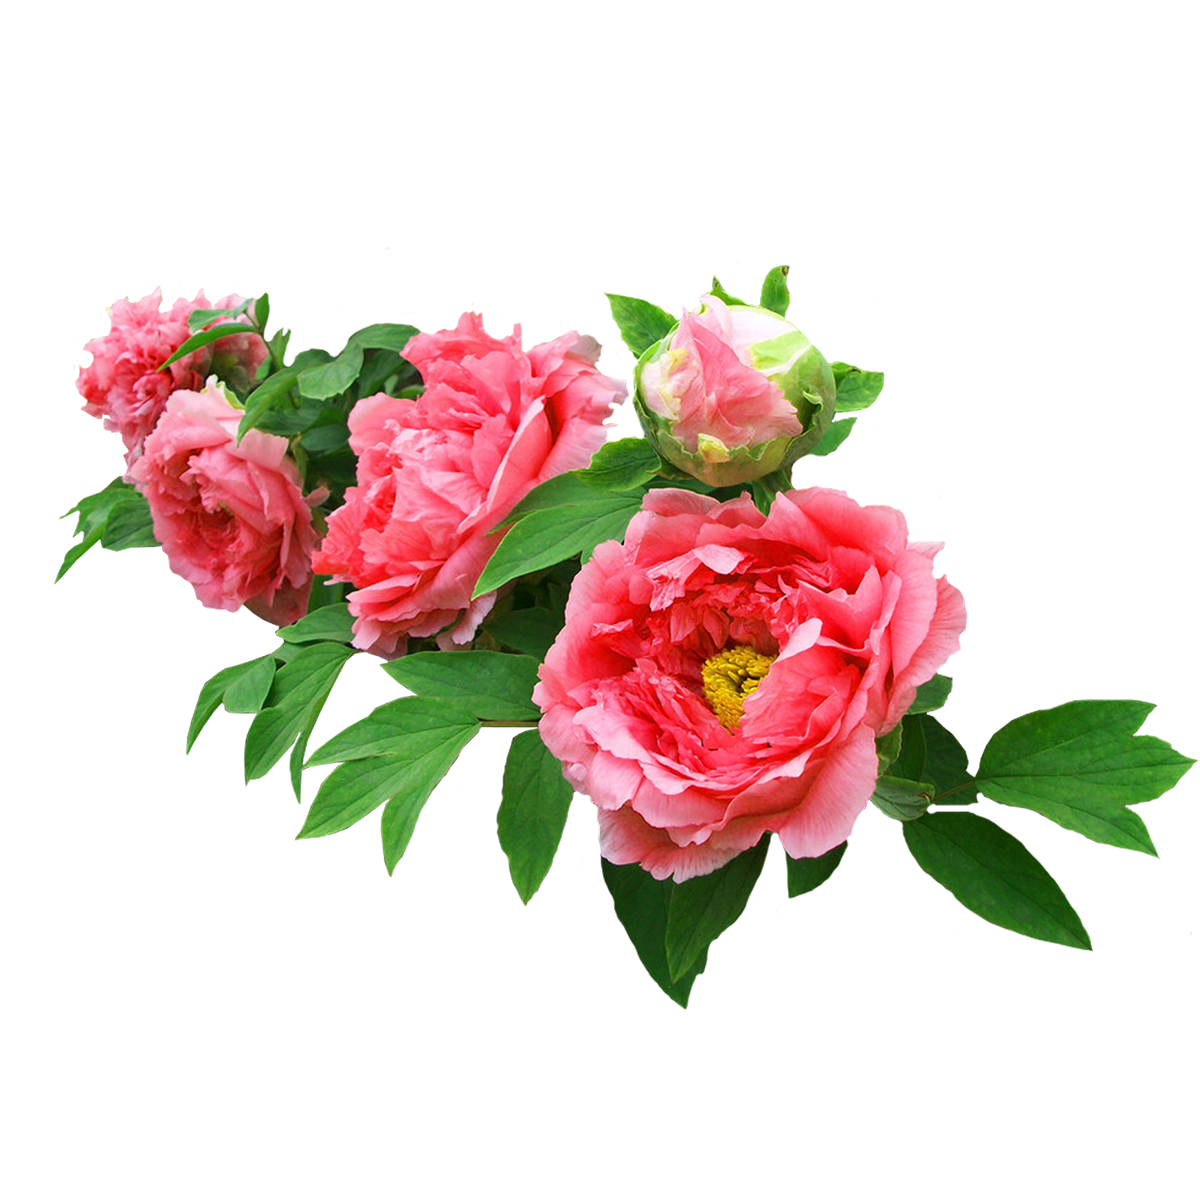 Real flower png. Moutan peony garden roses